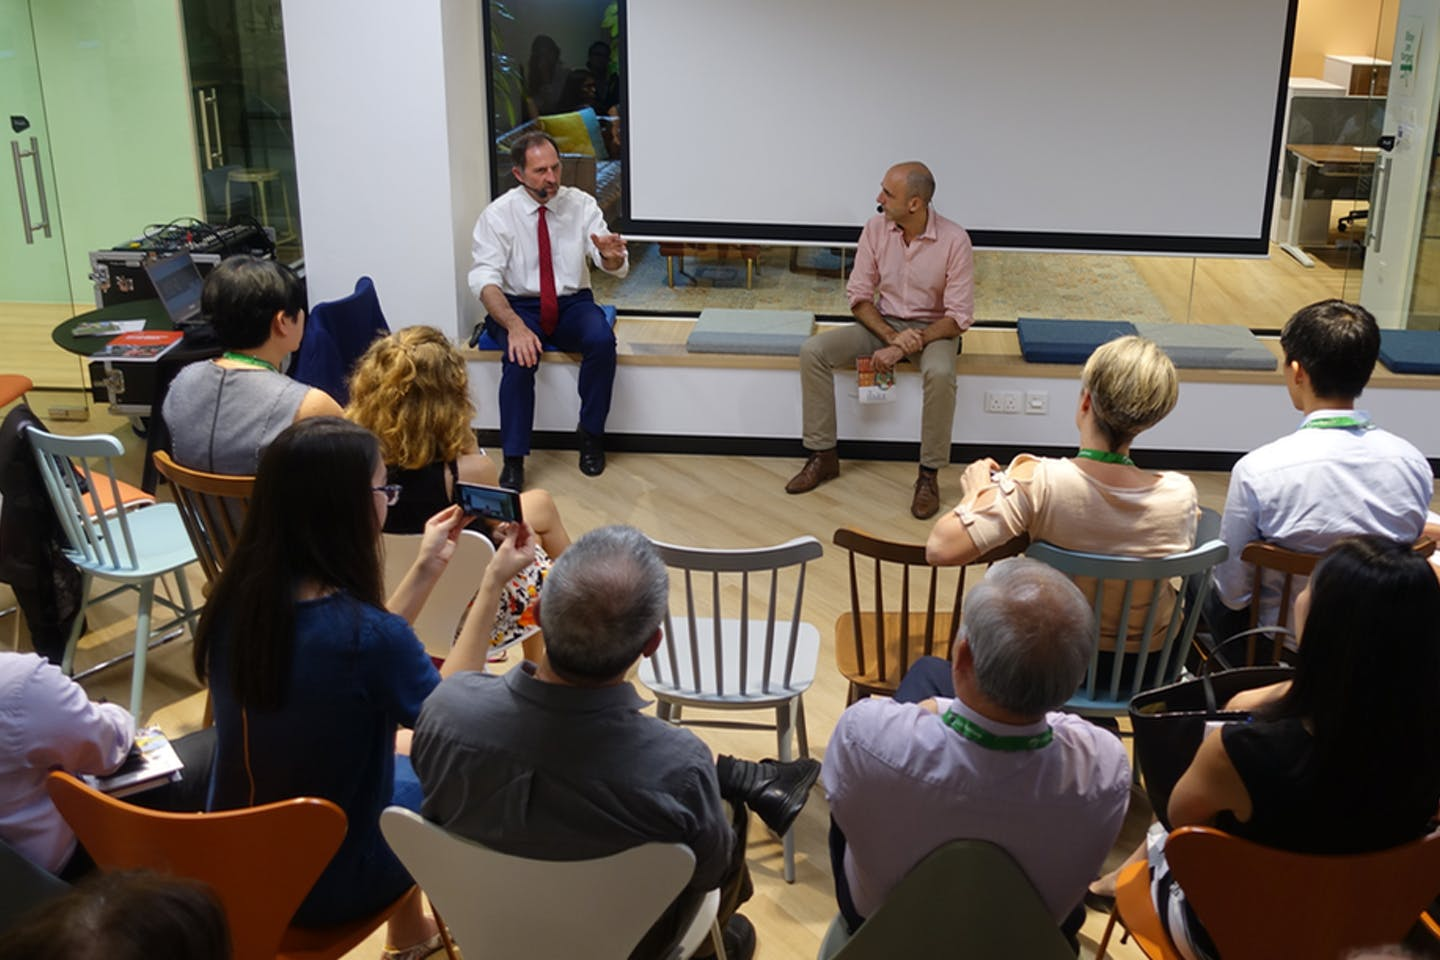 Peter White and Teymoor Nabili debate what the UN's Sustainable Development Goals mean for business at SDG Co in Singapore. Image: Eco-Business